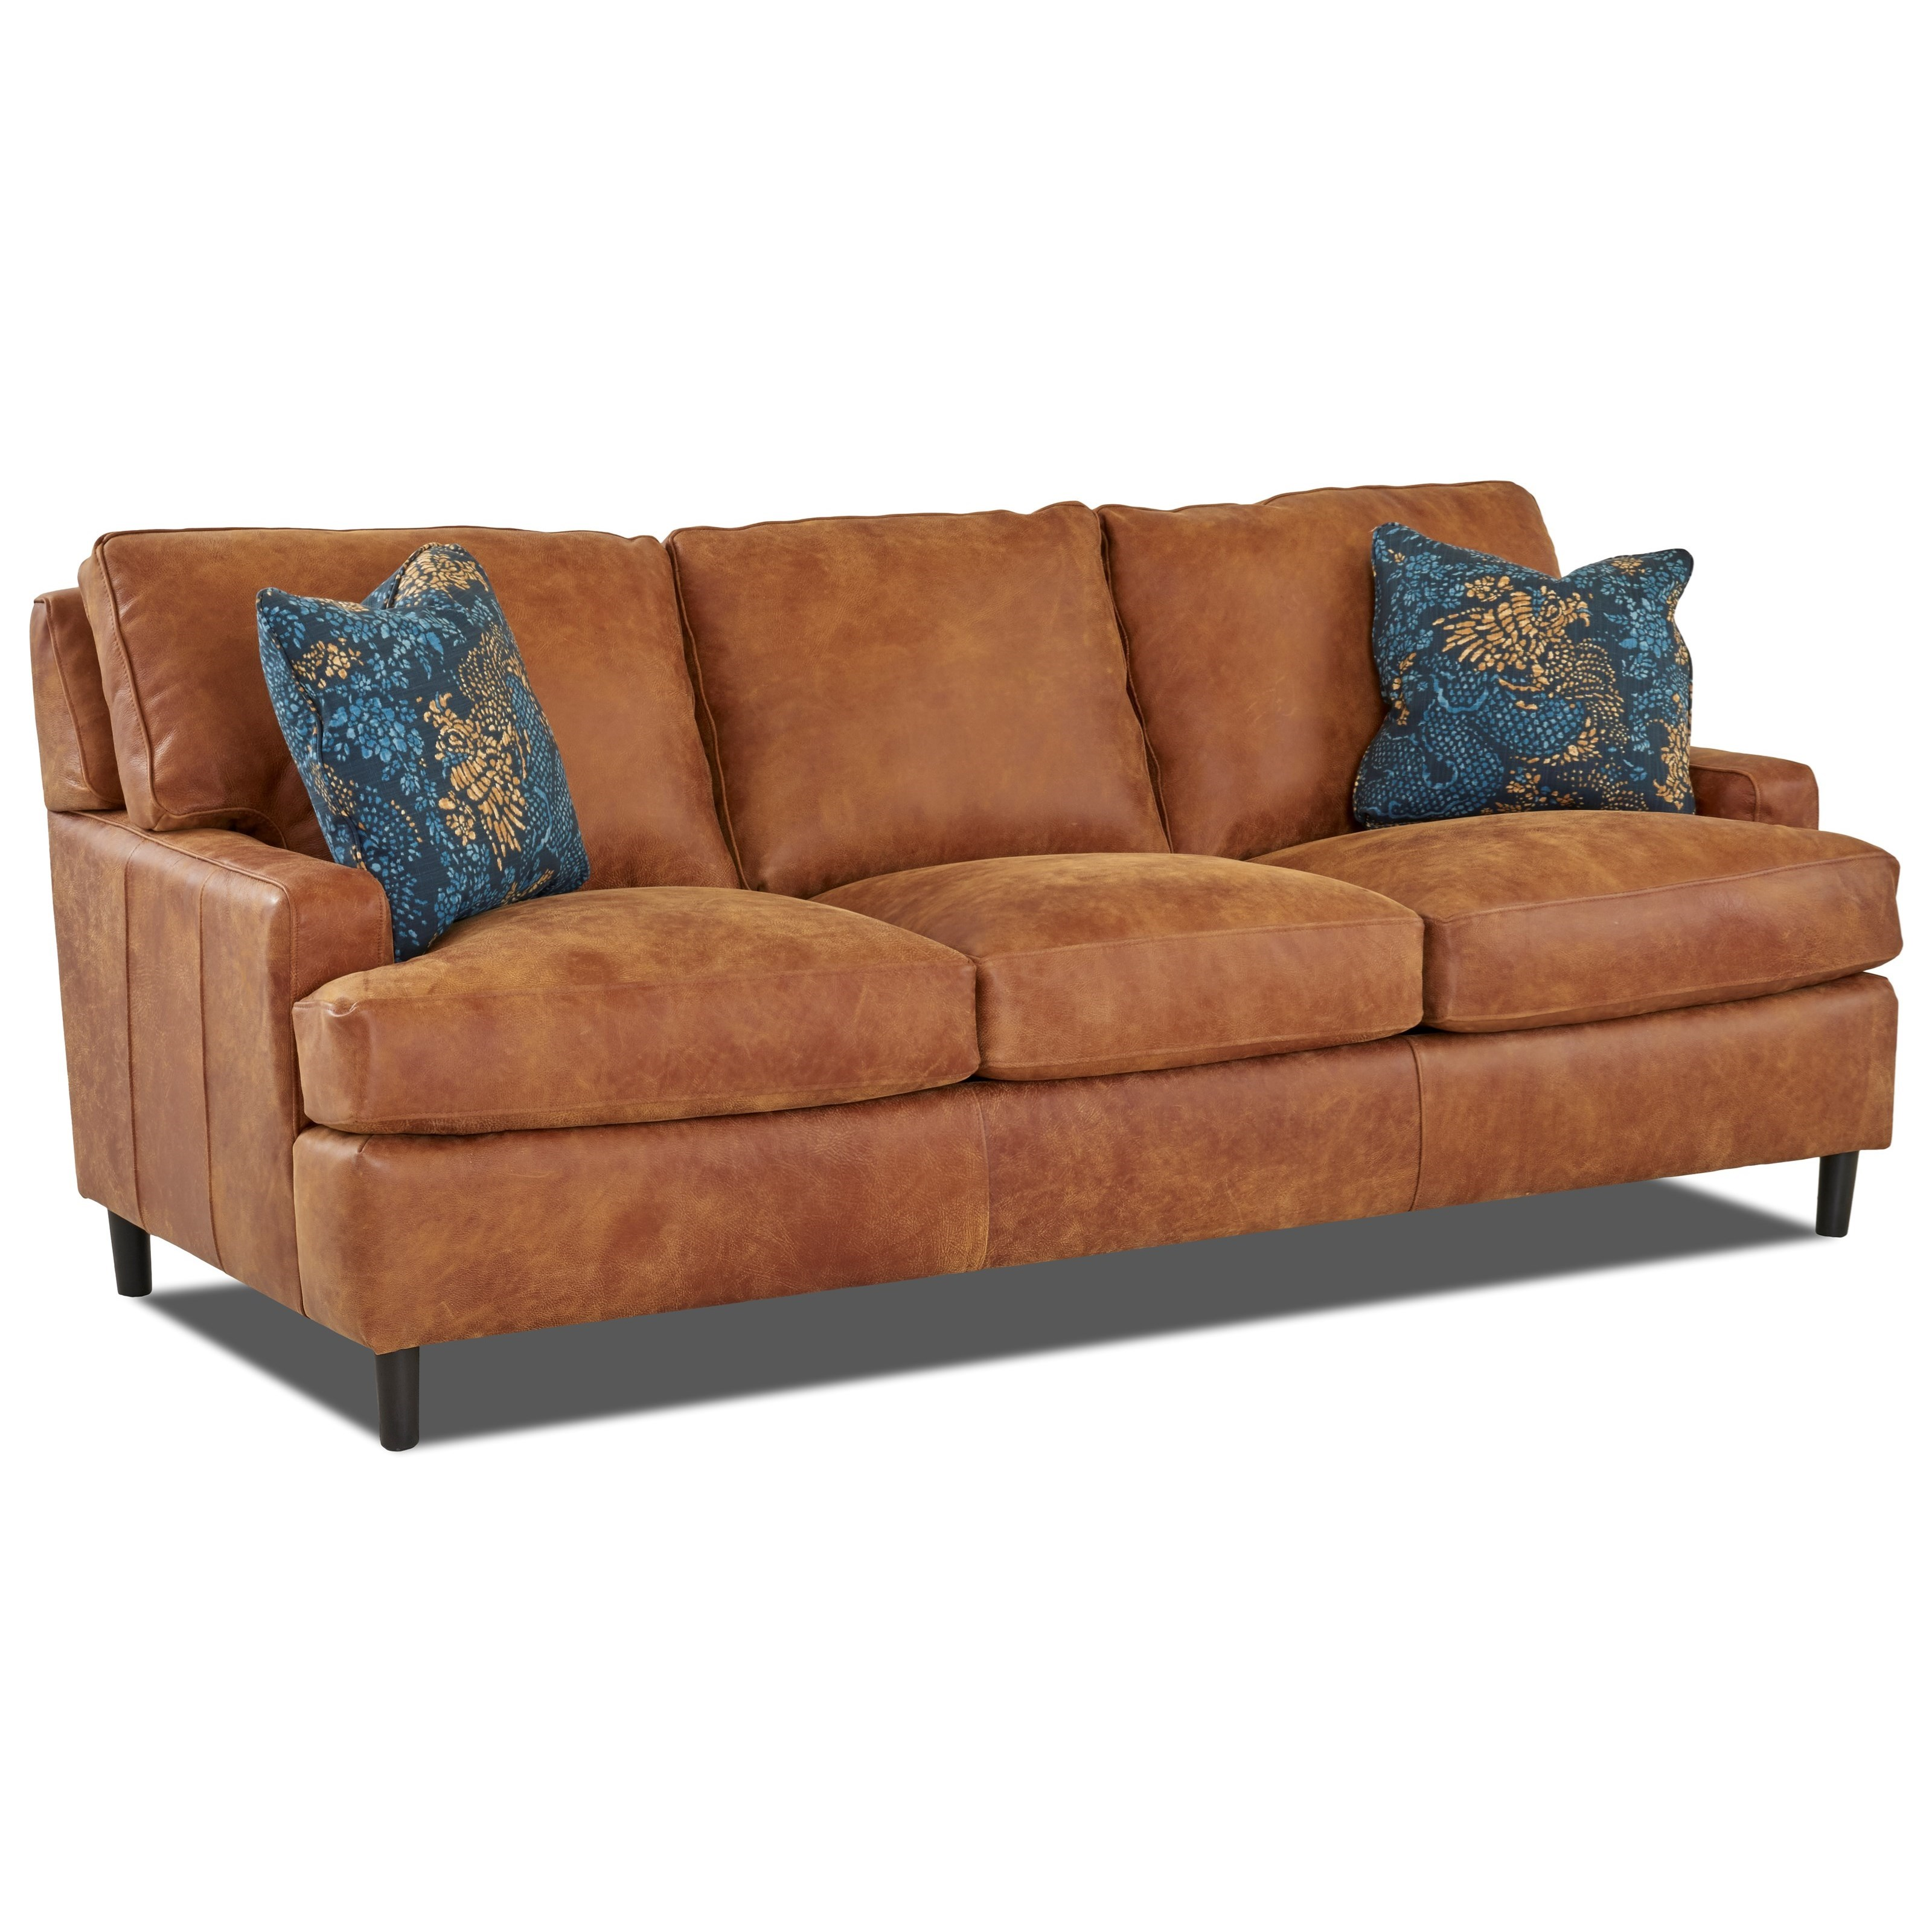 Cassio Contemporary Leather Sofa with Arm Pillows by Klaussner at Wayside  Furniture